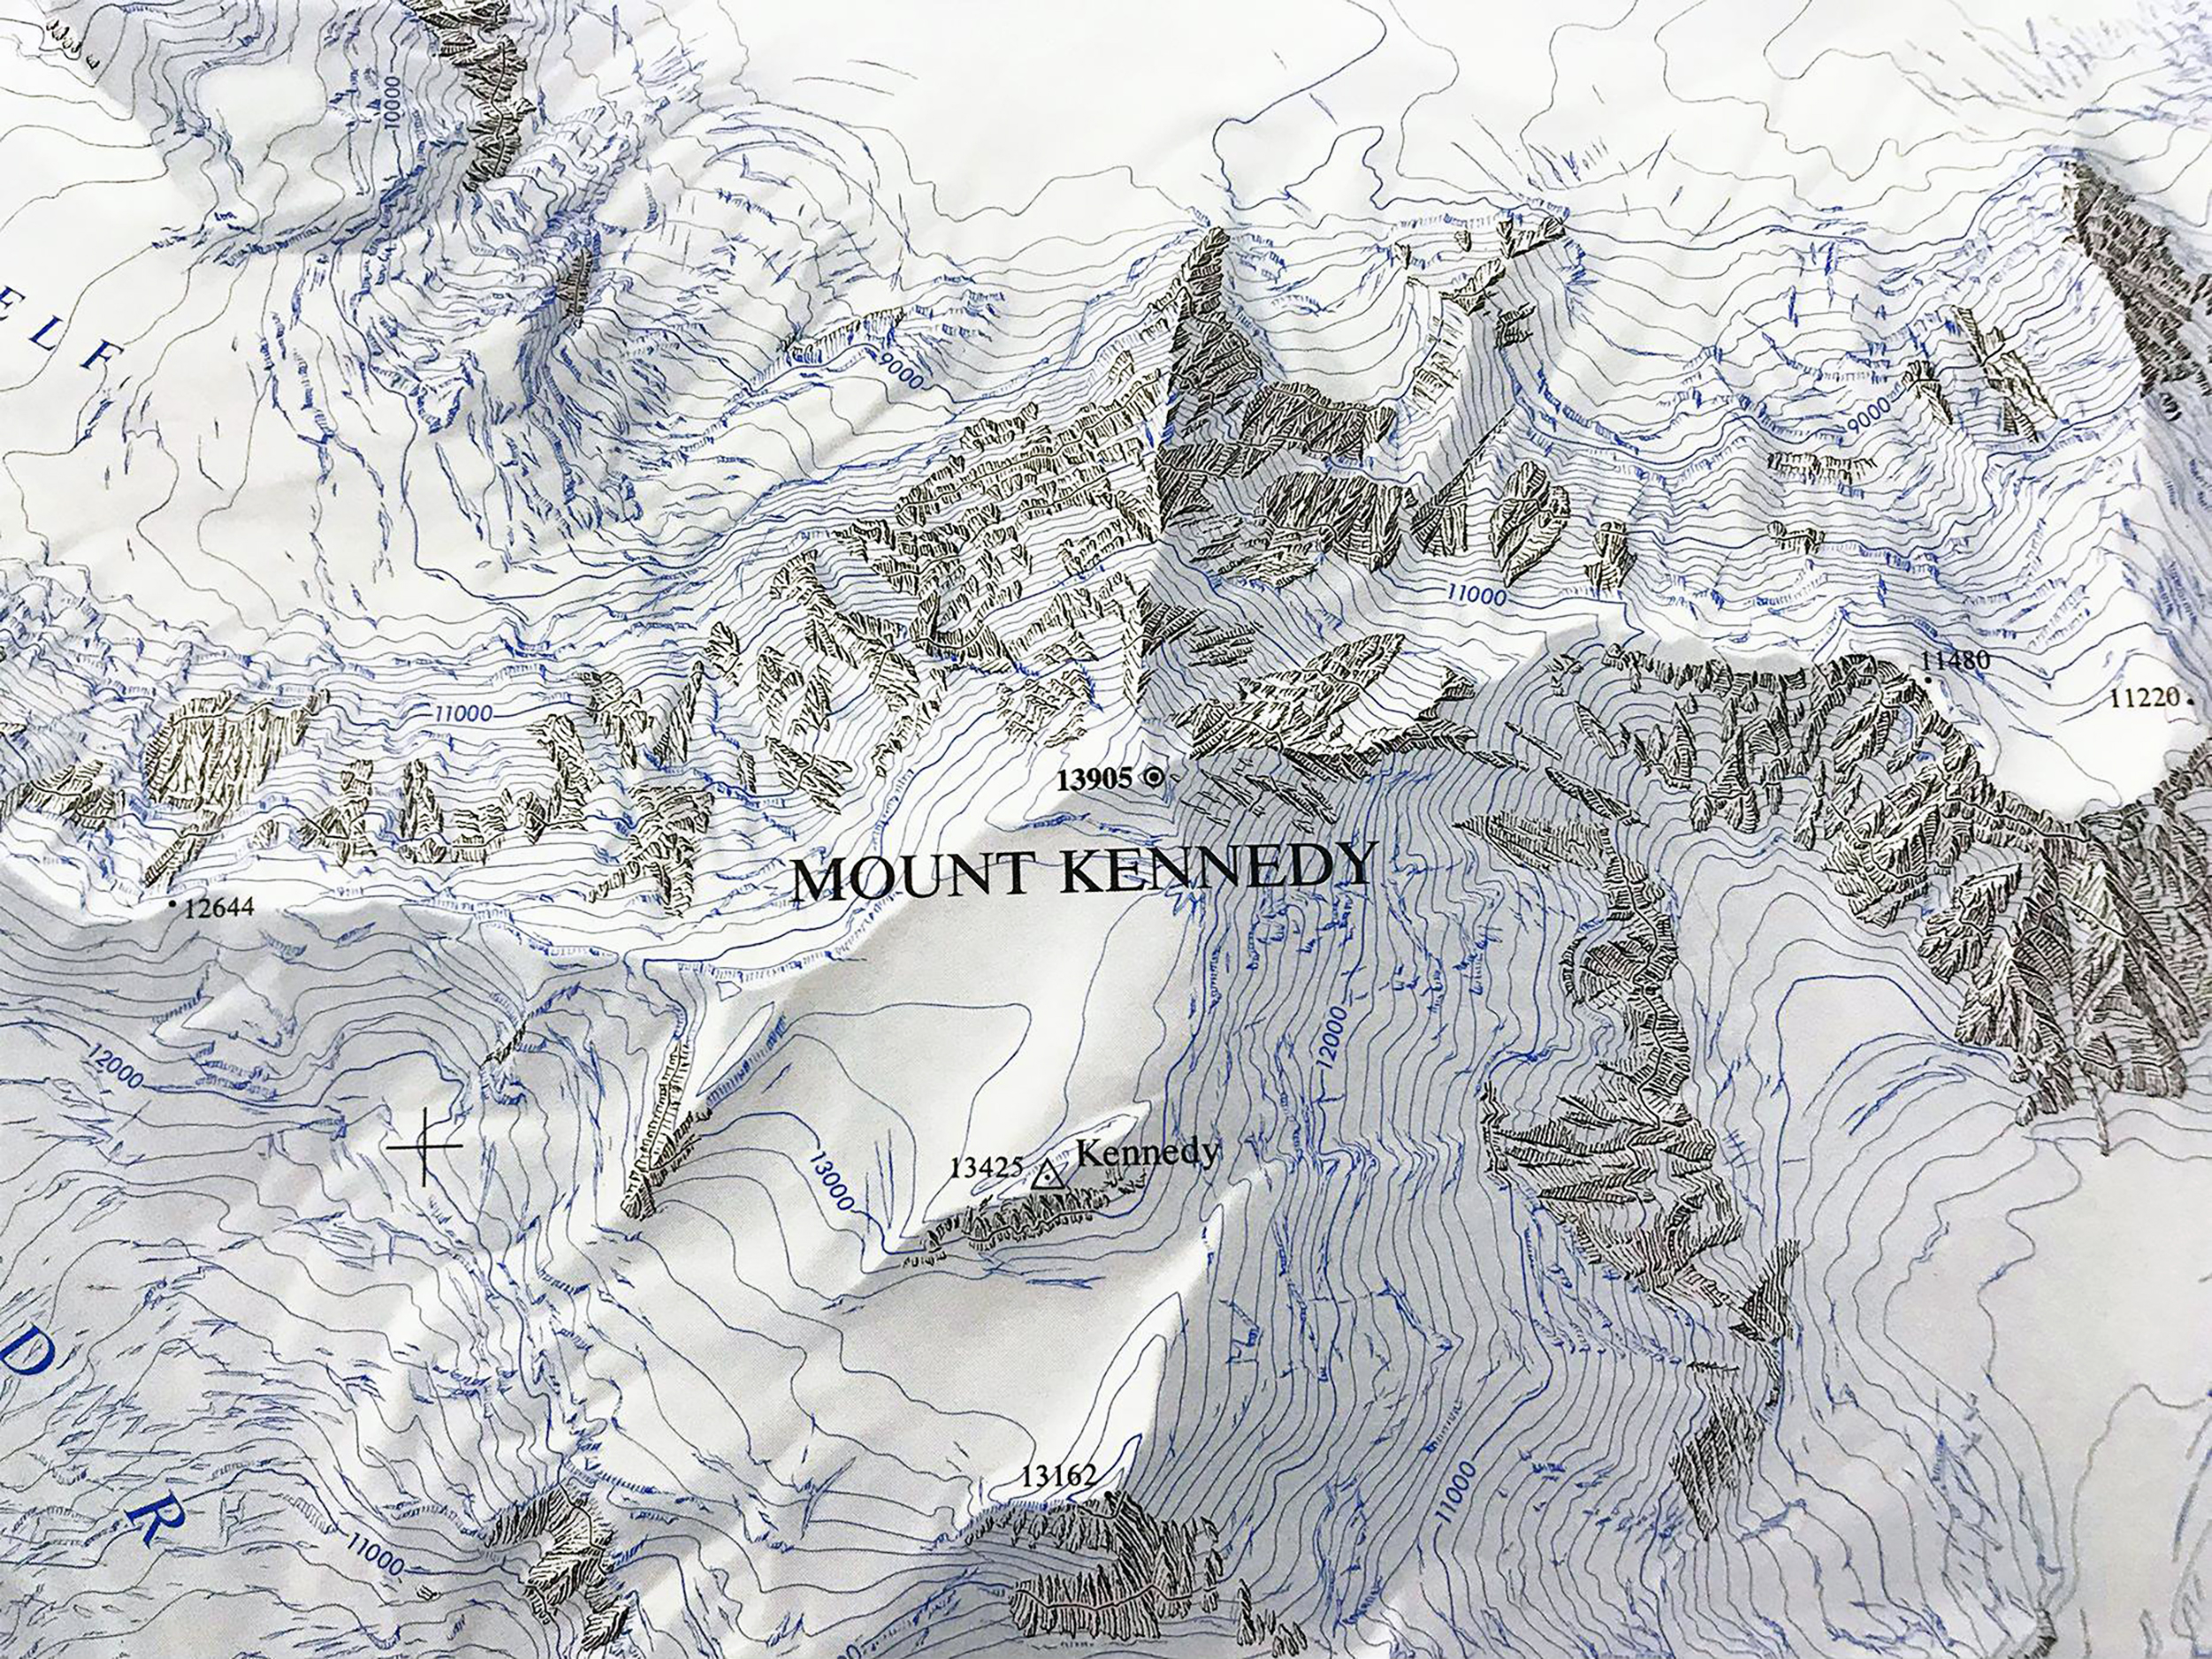 The Massif of Mt. Hubbard, Mt. Alverstone, and Mt. Kennedy